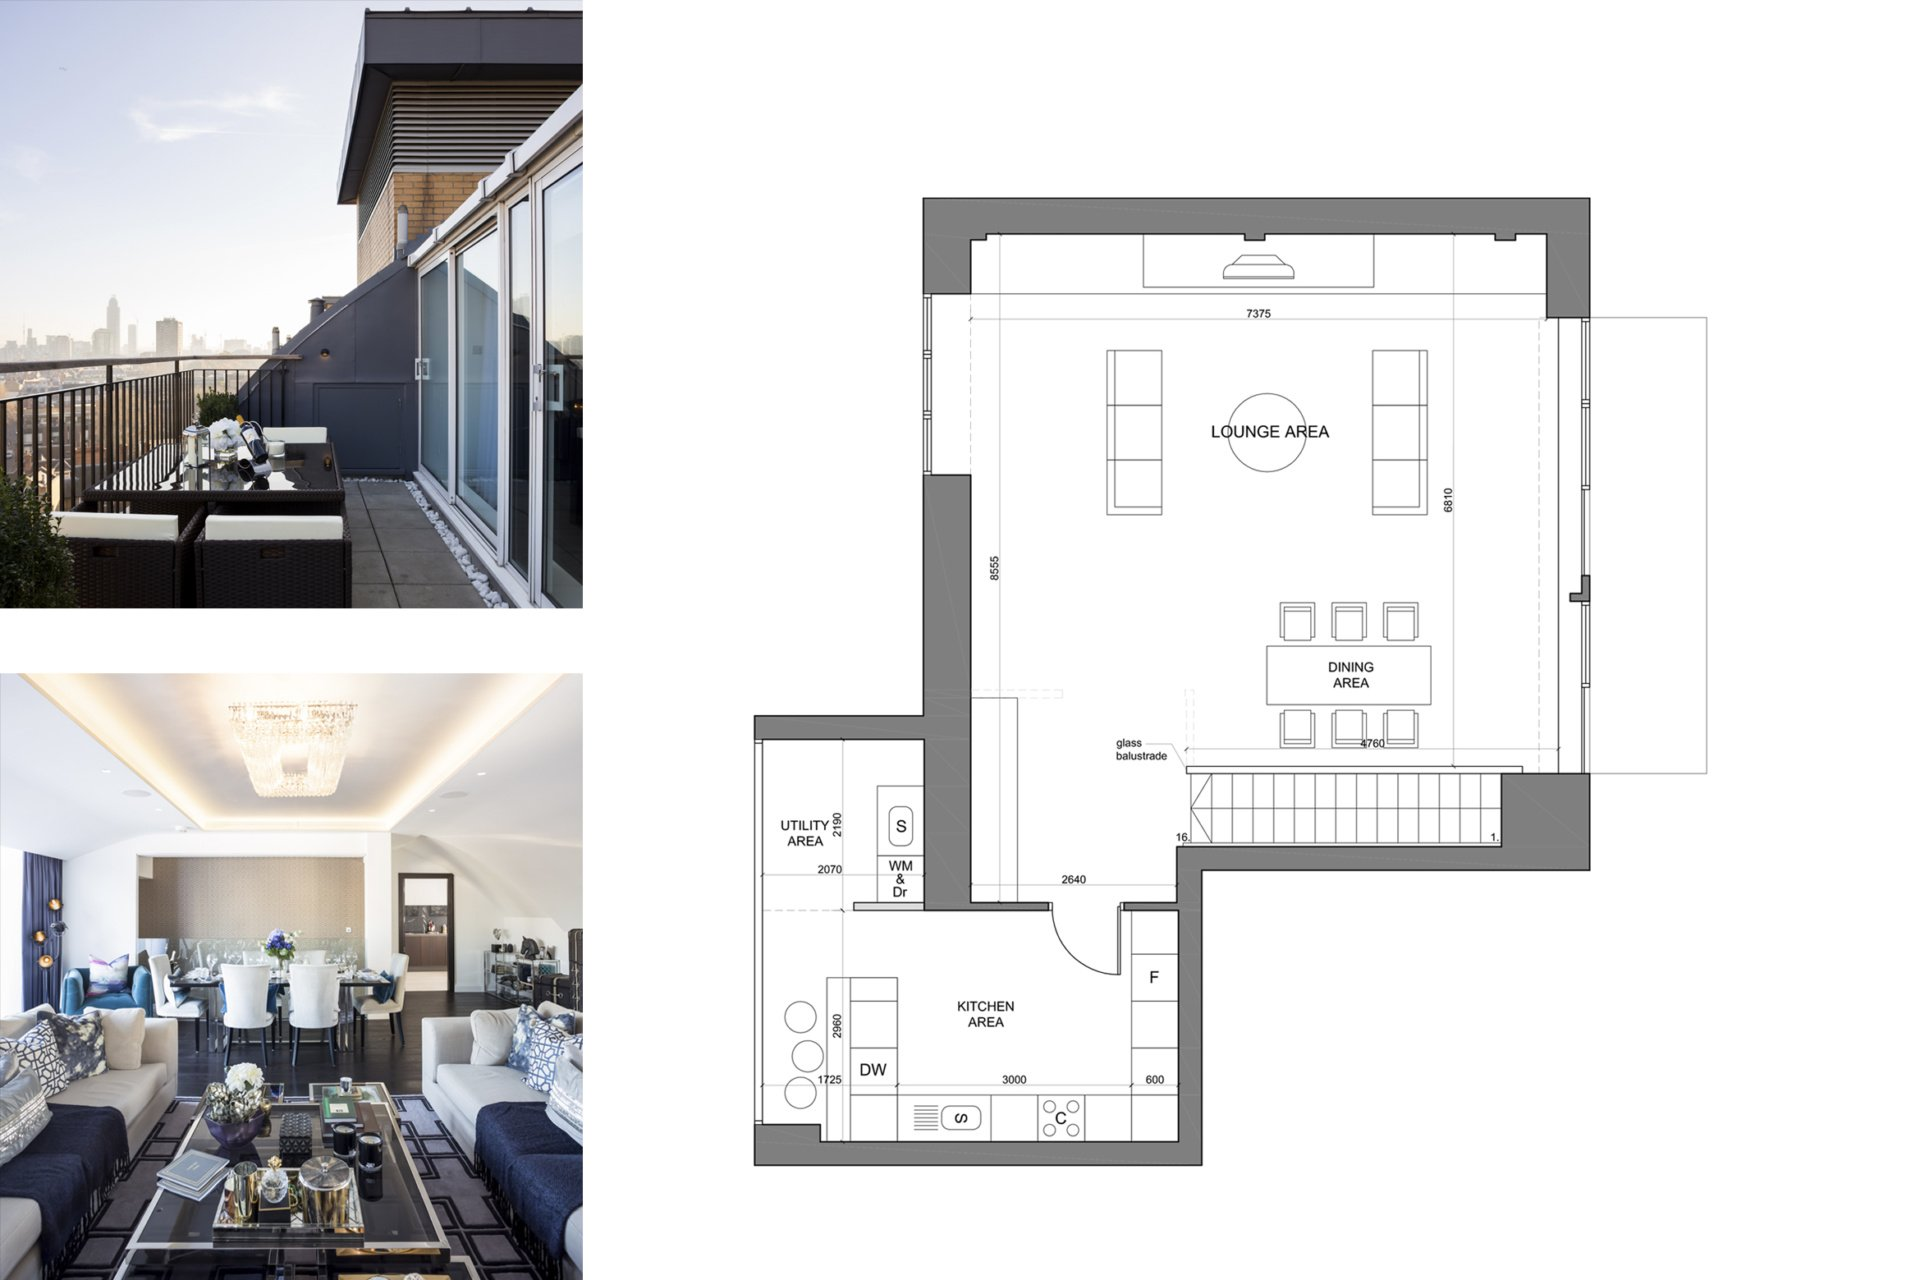 St James Park Westminster SW1H Penthouse alterations and refurbishment Floor plan and living areas 2 St James Park, Westminster SW1H | Penthouse alterations and refurbishment